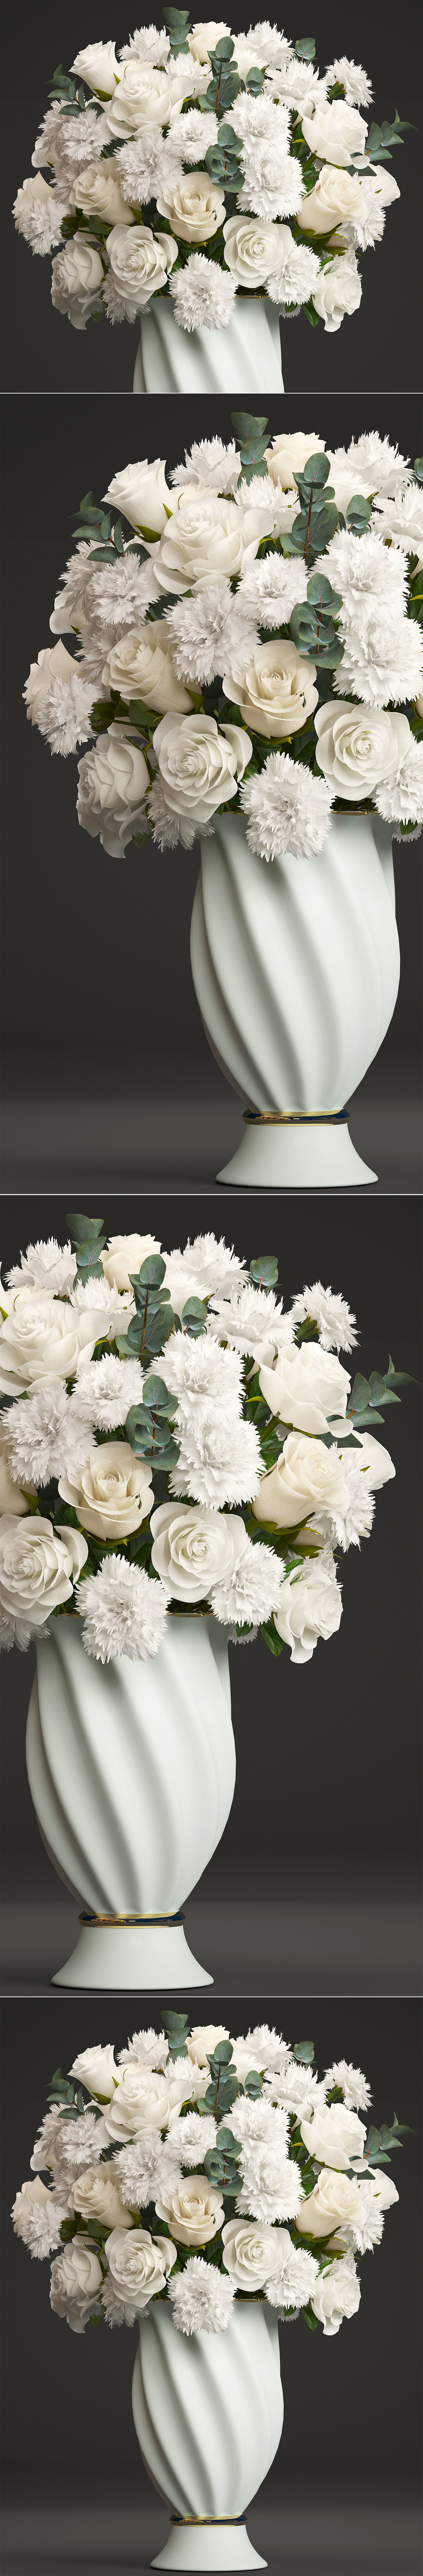 Bouquet Of White Flowers 3d Cgtrader